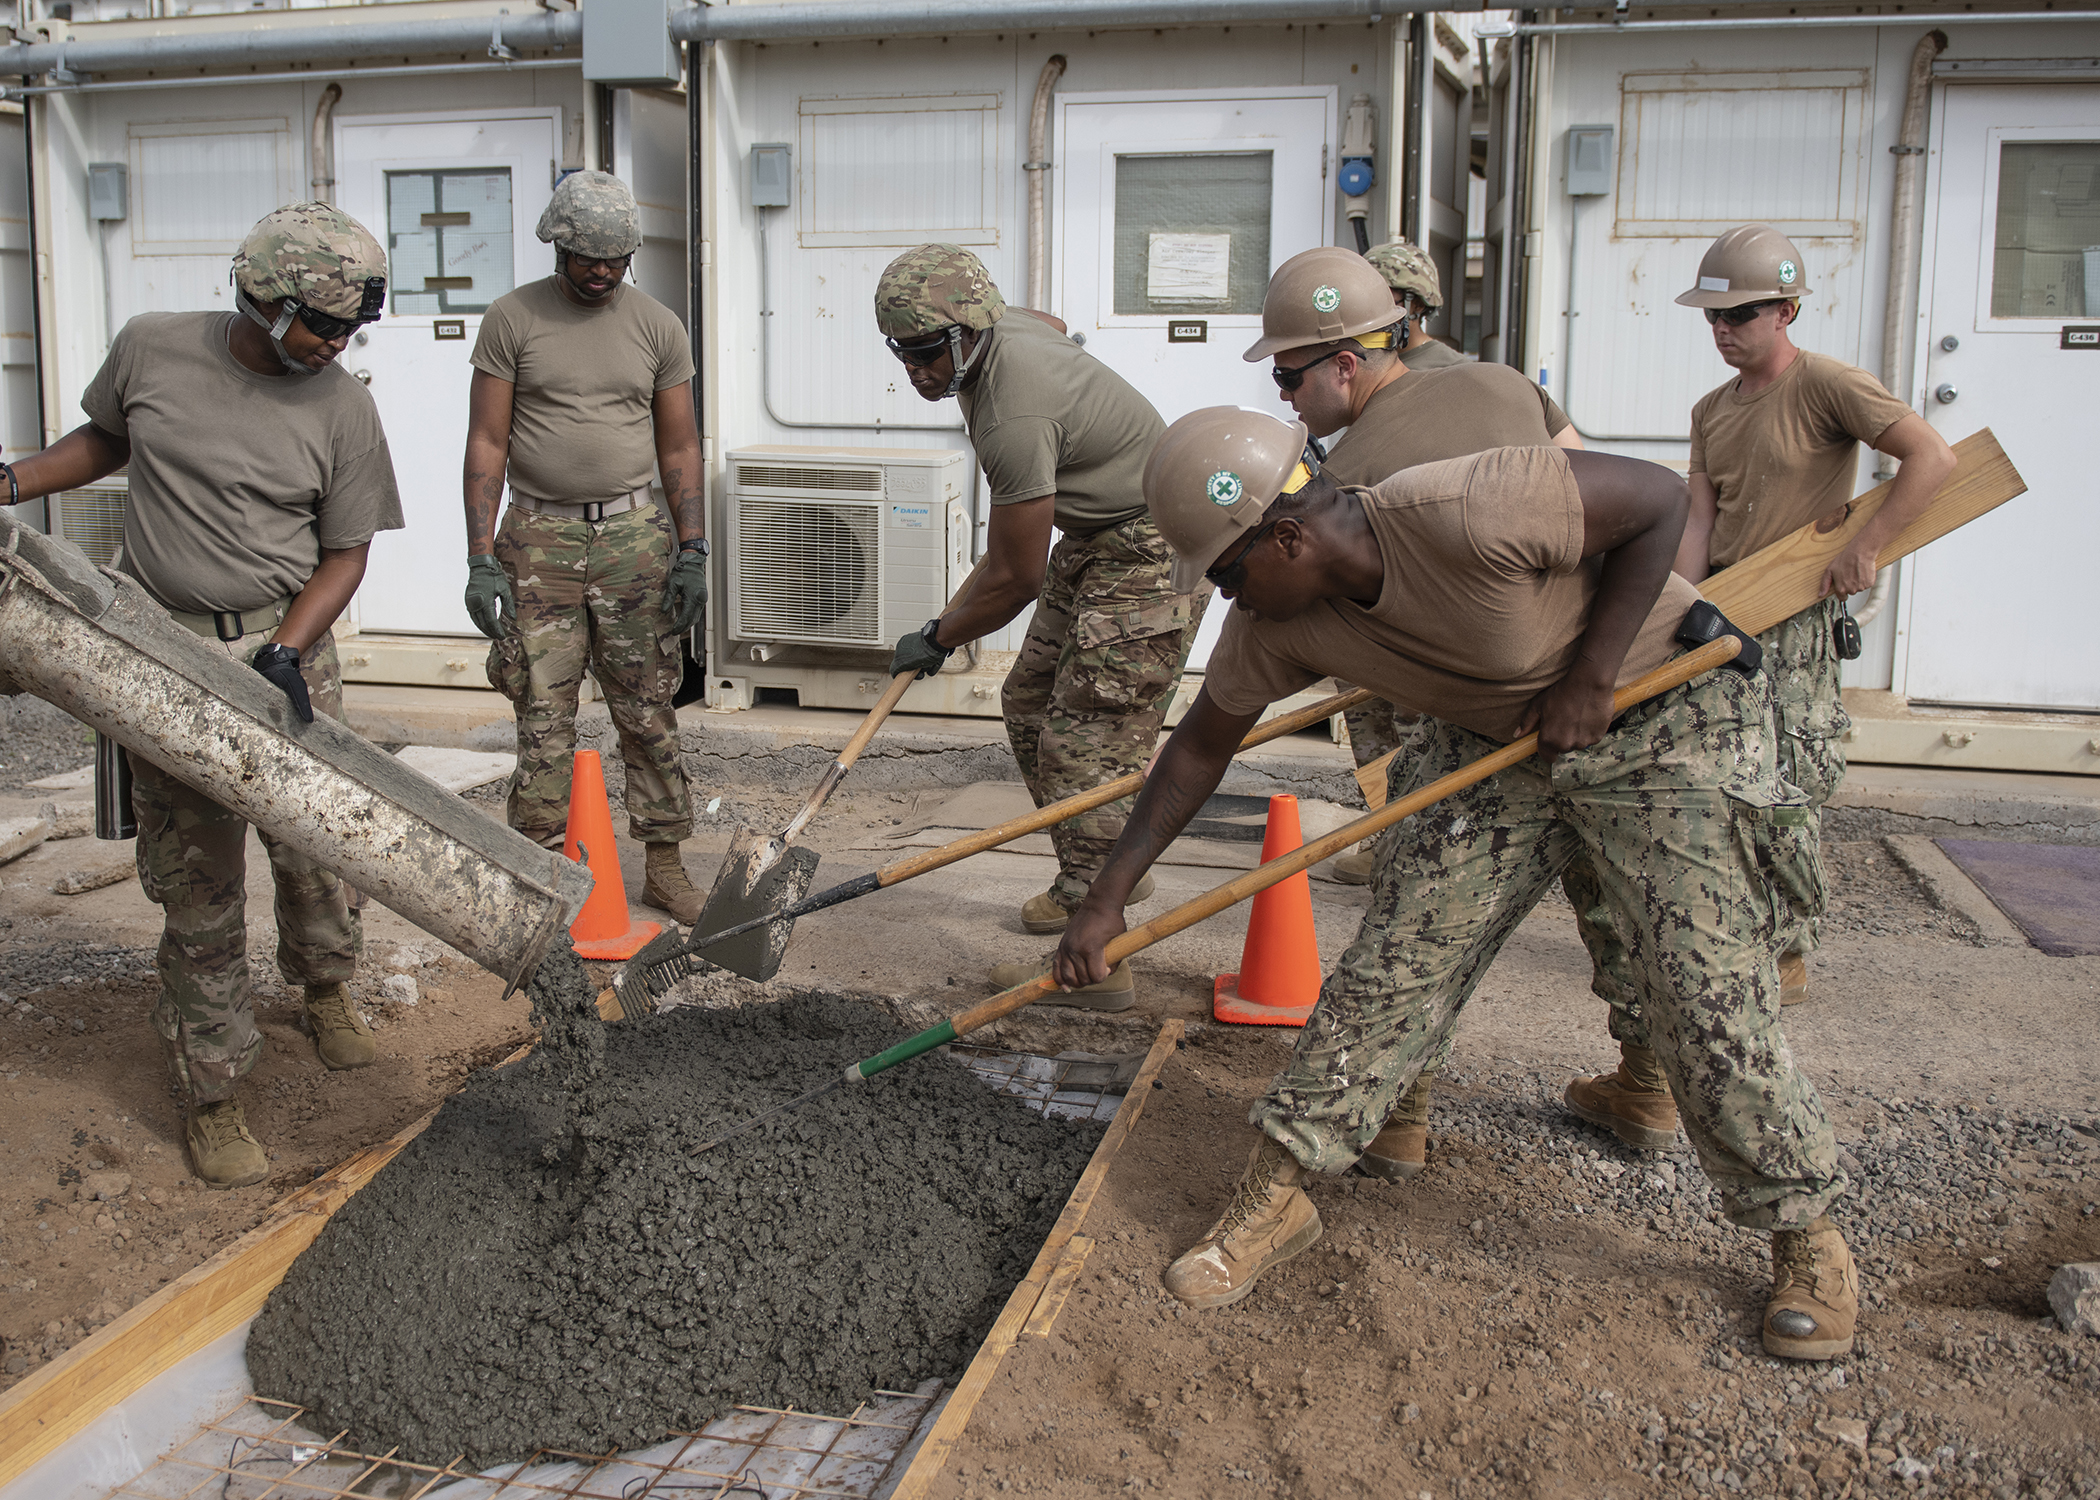 U.S. Navy Seabees from Naval Mobile Construction Battalion 1, assigned to Combined Joint Task Force - Horn of Africa (CJTF-HOA), and U.S. Army Soldiers from Second Platoon, 465th Engineer Company, 926th Engineer Battalion, 926th Engineer Brigade, 412th Theater Engineer Command, based in Birmingham, Alabama, assigned to CJTF-HOA, work side together during a construction project Feb. 5, 2019. The two units were working in conjunction as a transition to the 465th EVCC taking over for the Seabees. (U.S. Air Force photo by Tech. Sgt. Shawn Nickel)